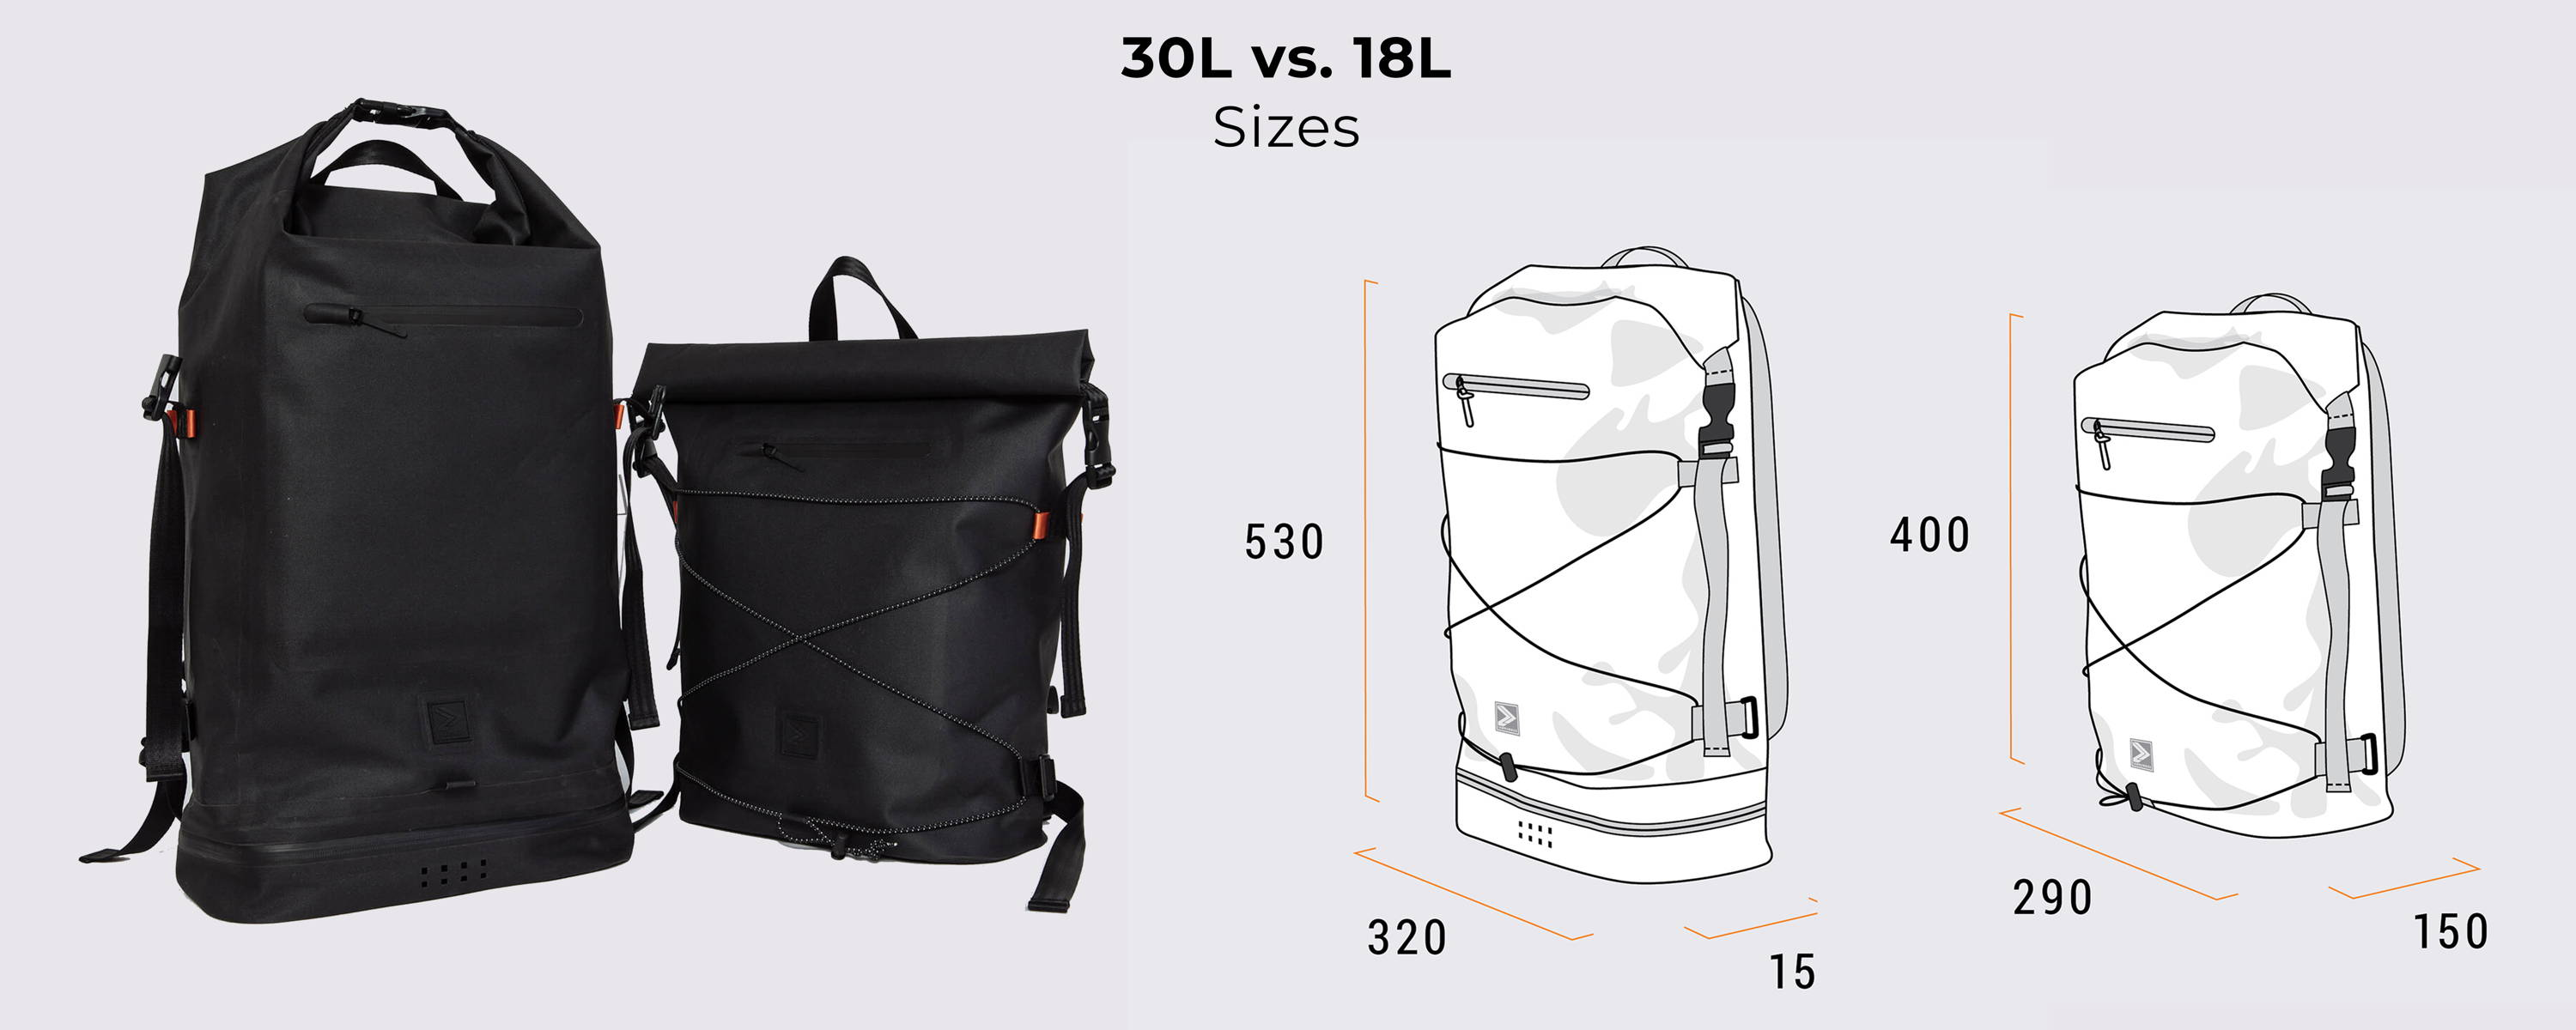 27a68dd7c1 The Spin Bag - The only everyday backpack you need | IAMRUNBOX